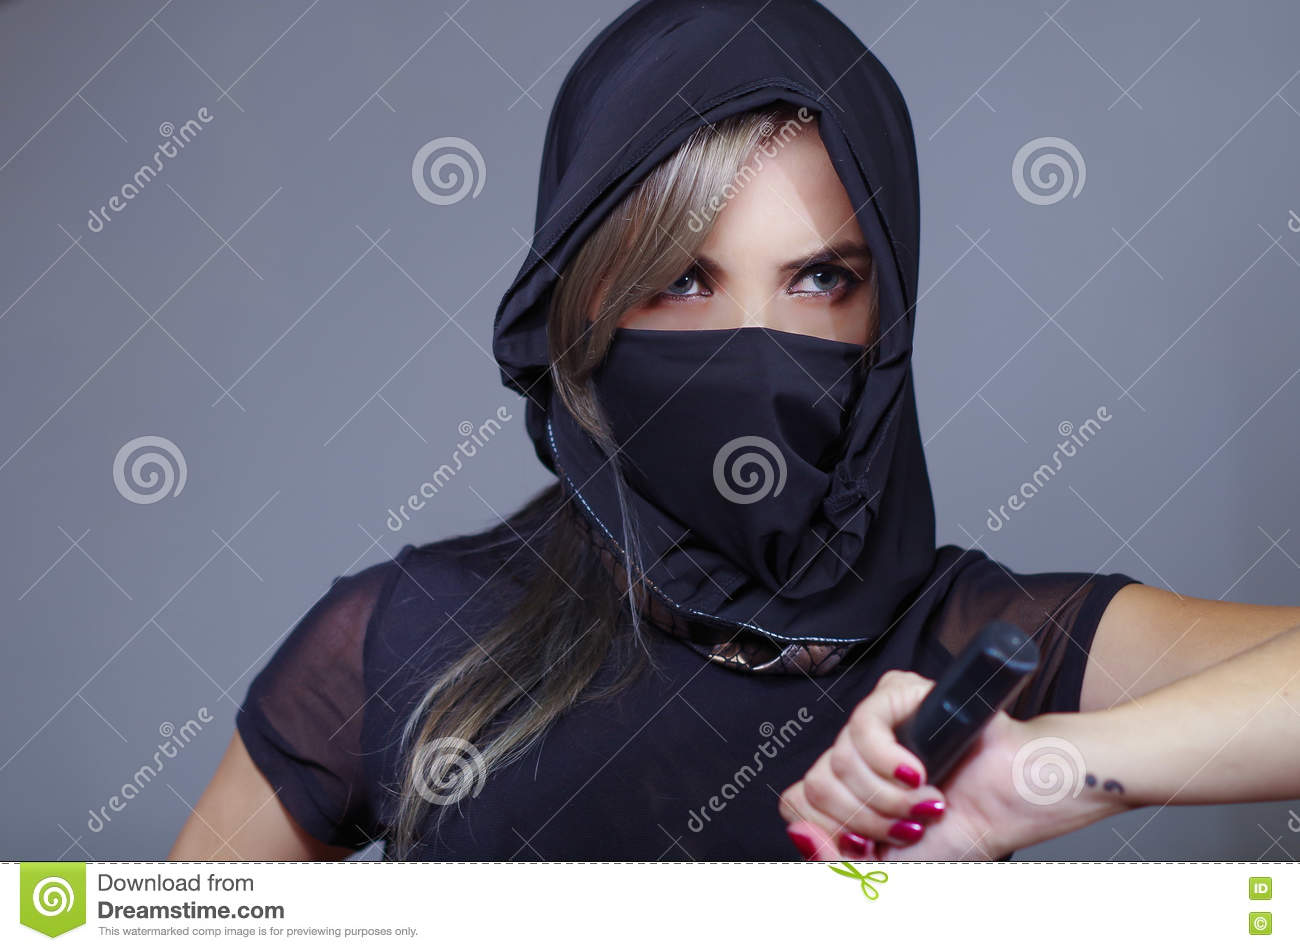 Samurai woman dressed in black with matching veil covering face, holding hand on sword facing camera, ninja concept